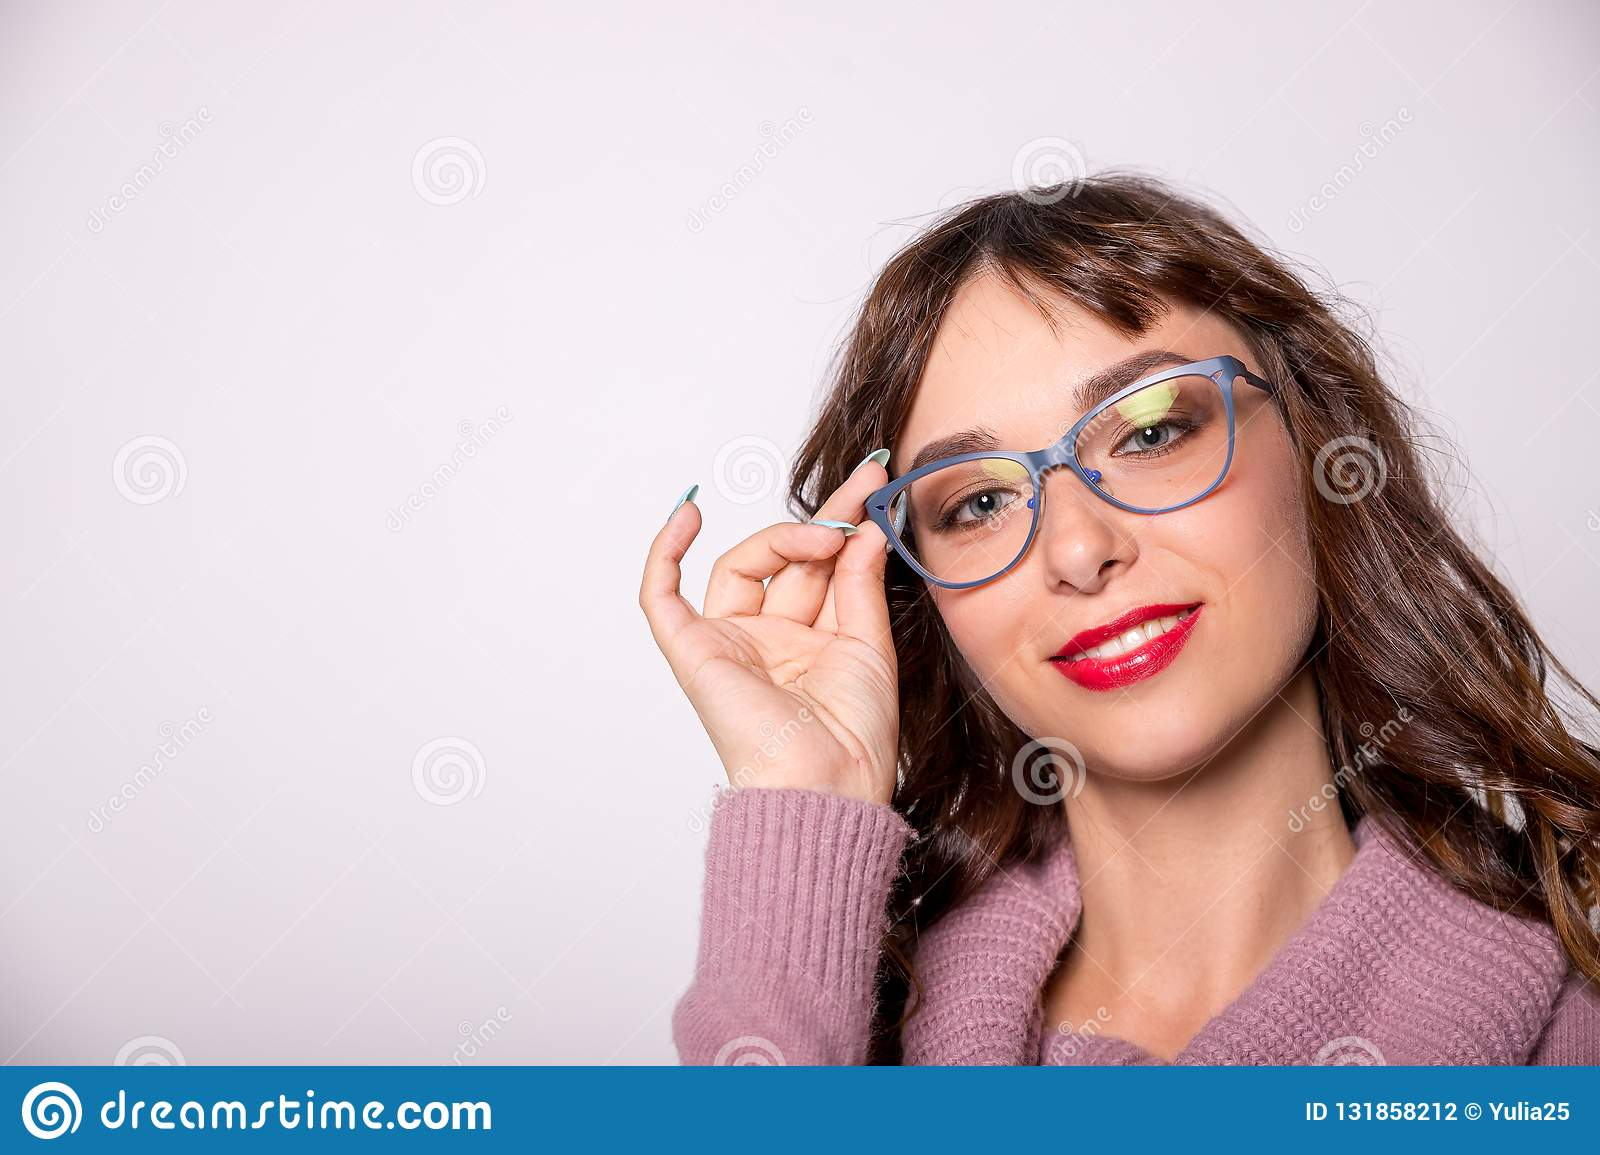 Beauty fashion girl wearing glasses showing empty copy space, white background. Happy girl presenting trendy